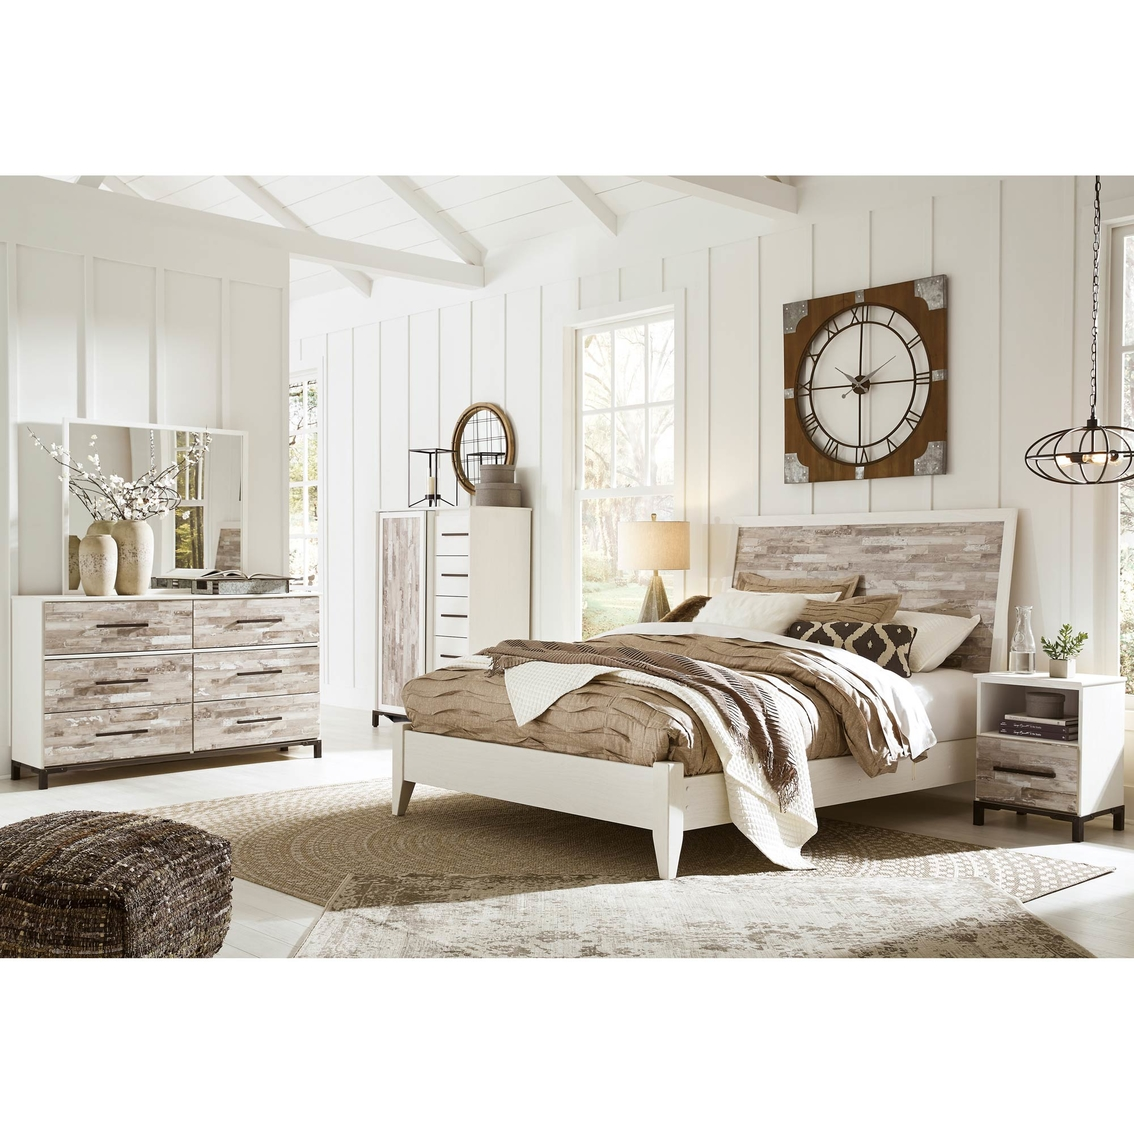 Dressing A Bed Signature Design By Ashley Evanni Panel Bed 5 Pc Set With